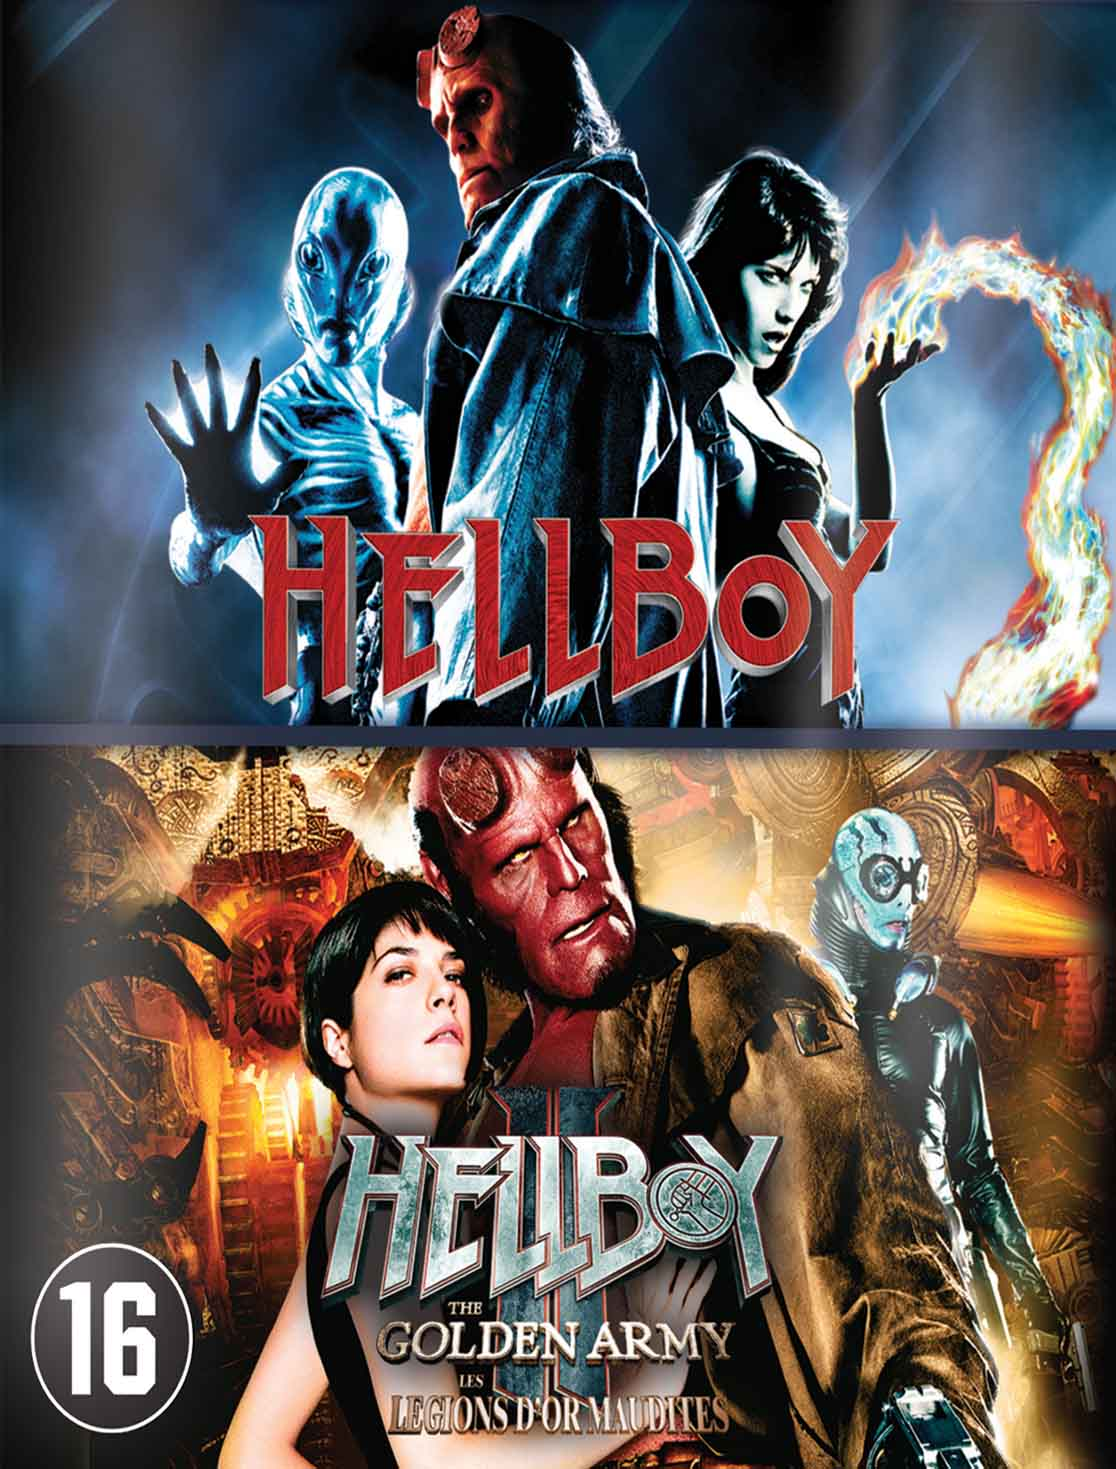 Hellboy 1 e 2 Torrent – Blu-ray Rip 720p e 1080p Dublado (2004-2008)